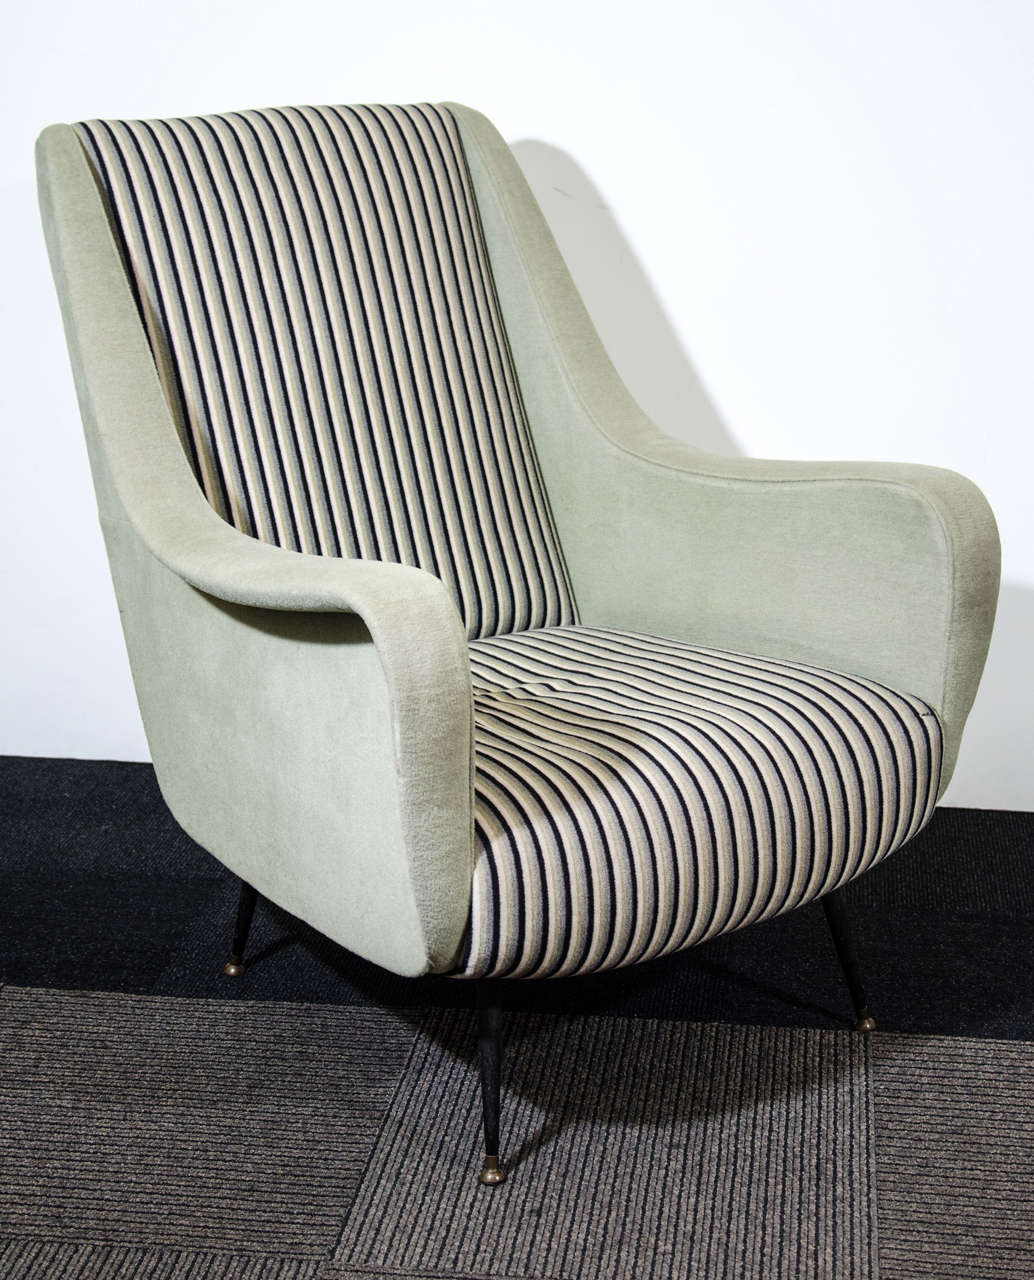 A Mid Century Pair Of Italian Arm Chairs W Striped